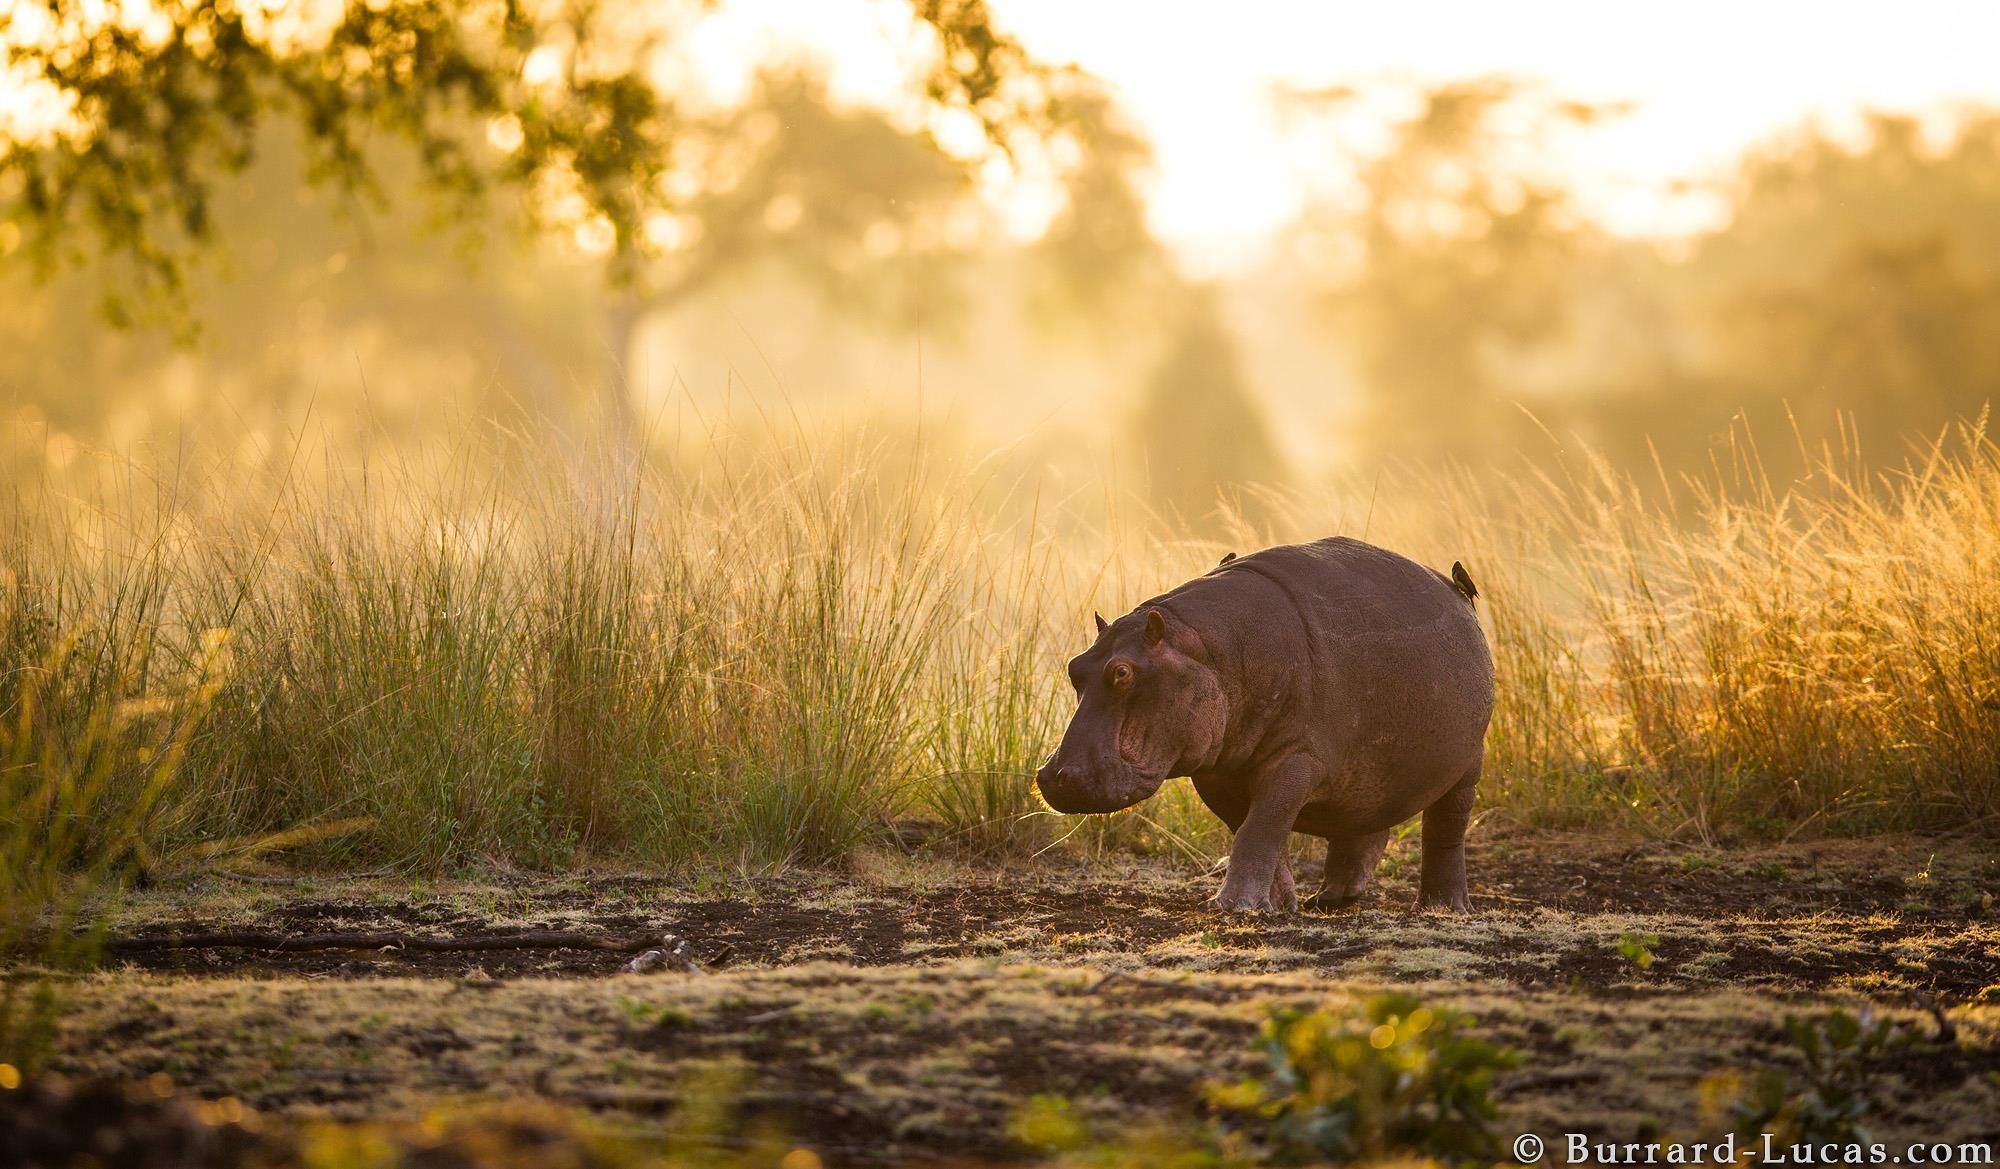 Sunrise in South Luangwa. This hippo was returning to the river after a night of feeding.